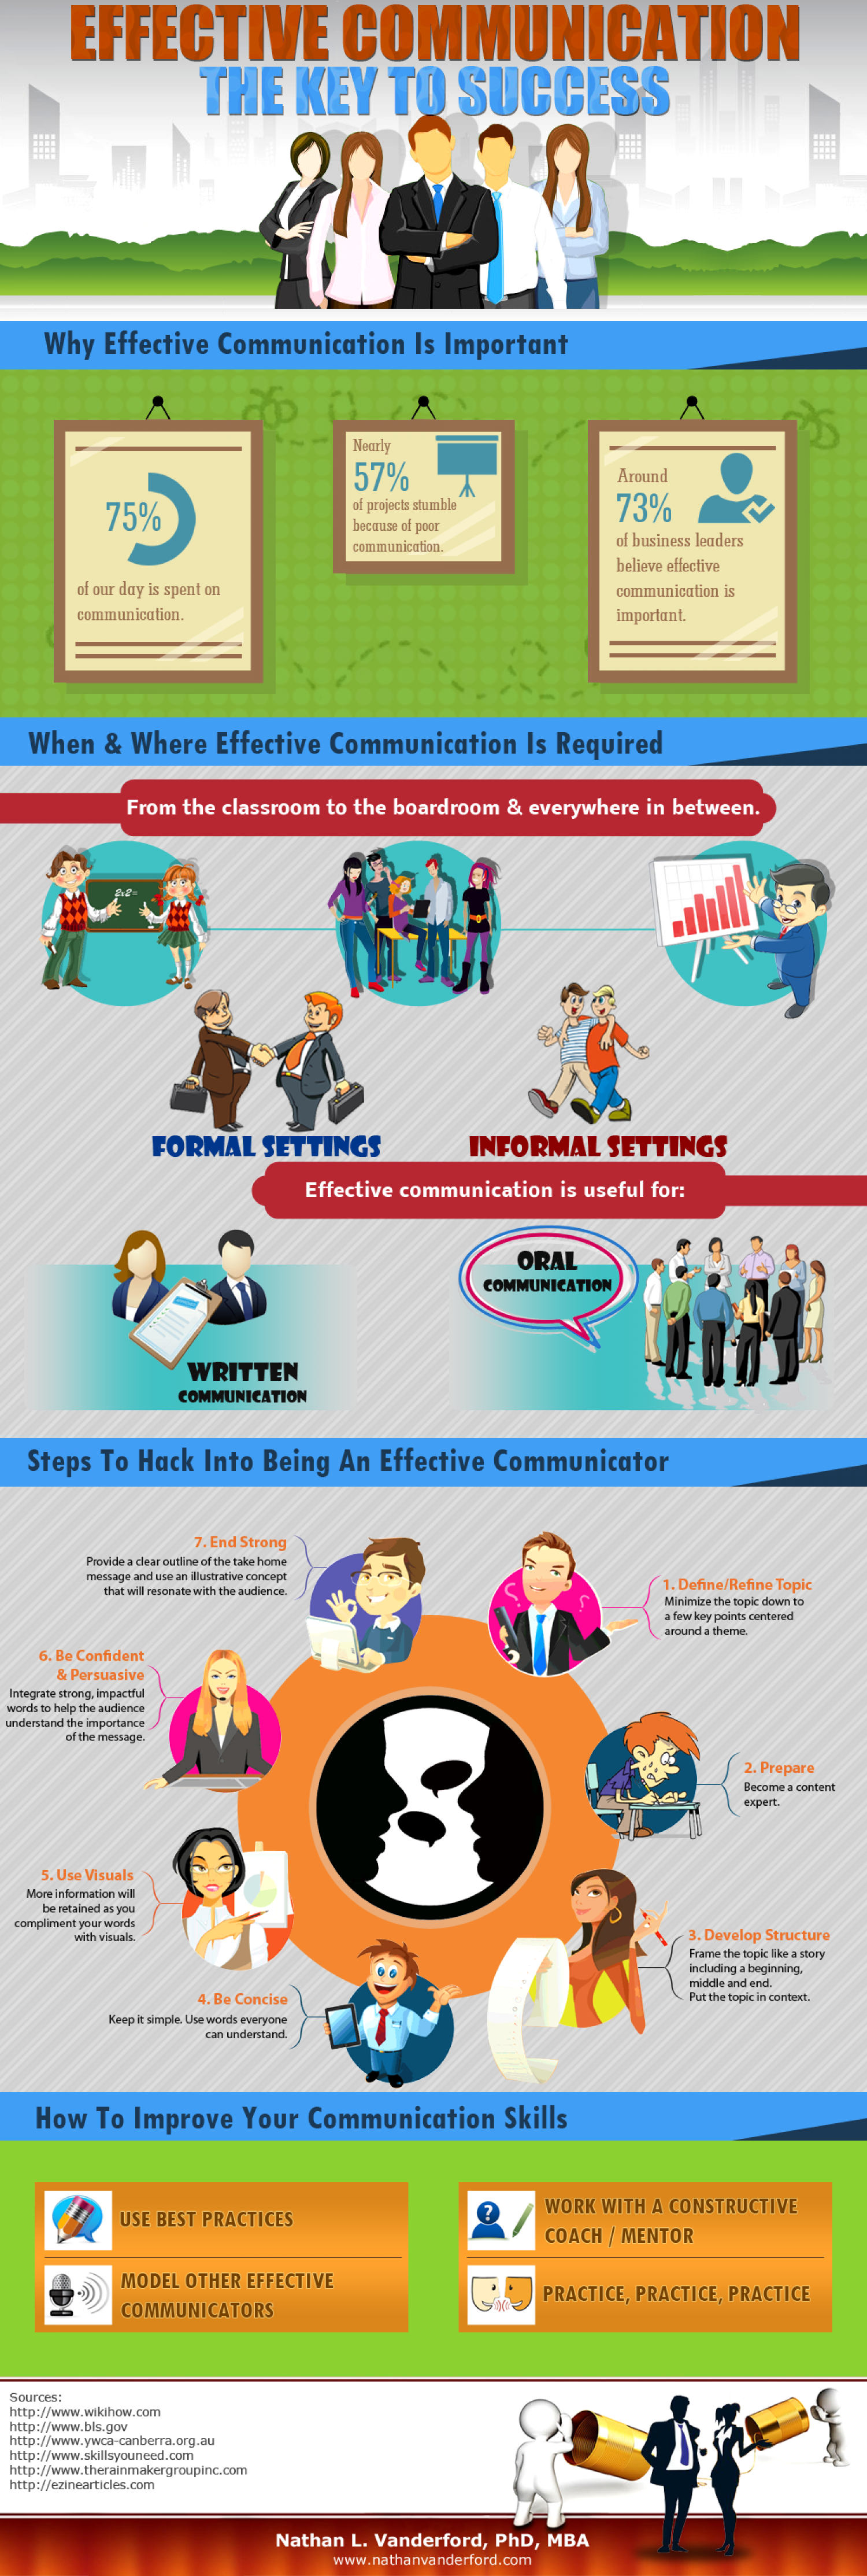 Effective Communication The Key To Success Infographic